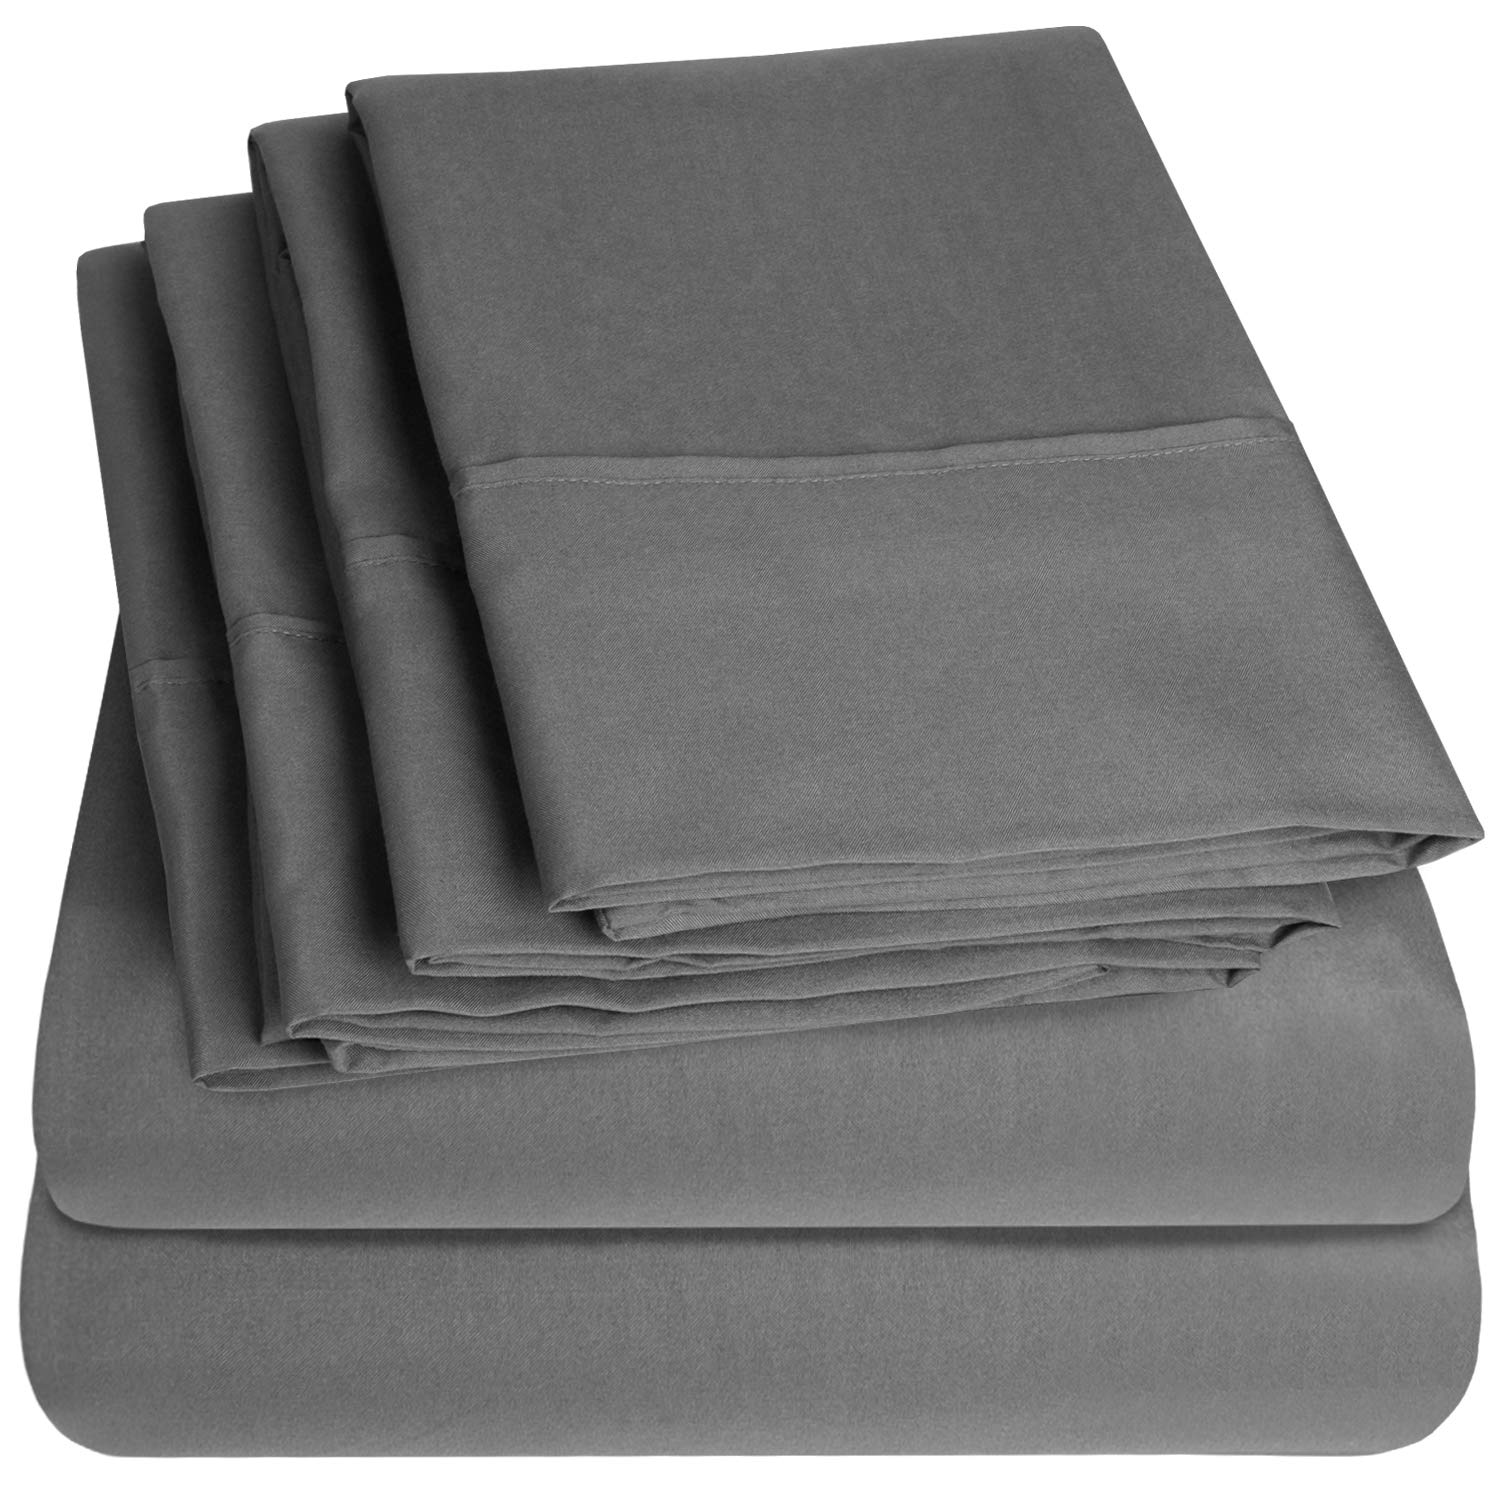 Sweet Home Collection Size 4 Piece 1500 Thread Count Fine Brushed Microfiber Deep Pocket Twin Sheet Set Bedding-1 EXTRA PILLOW CASES, VALUE, Gray